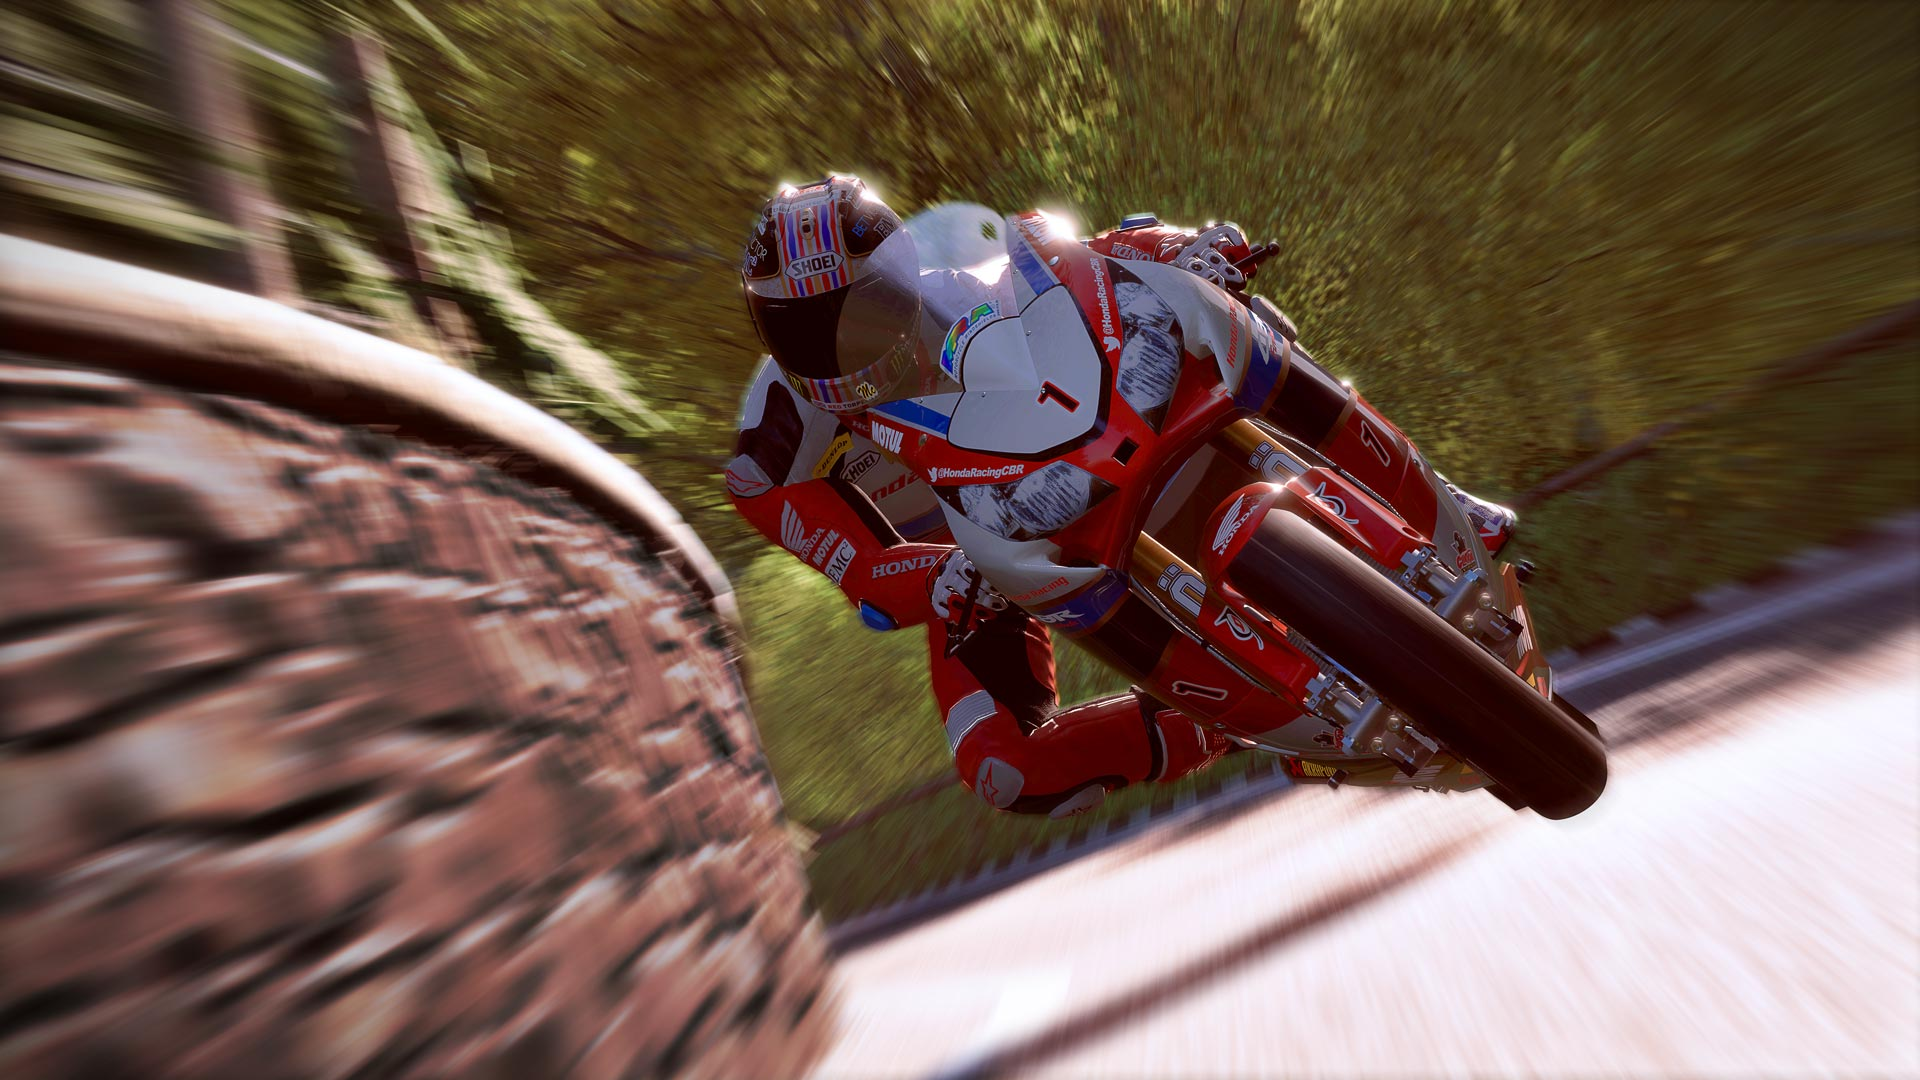 Here's the new trailer for TT Isle of Man: Ride on the Edge